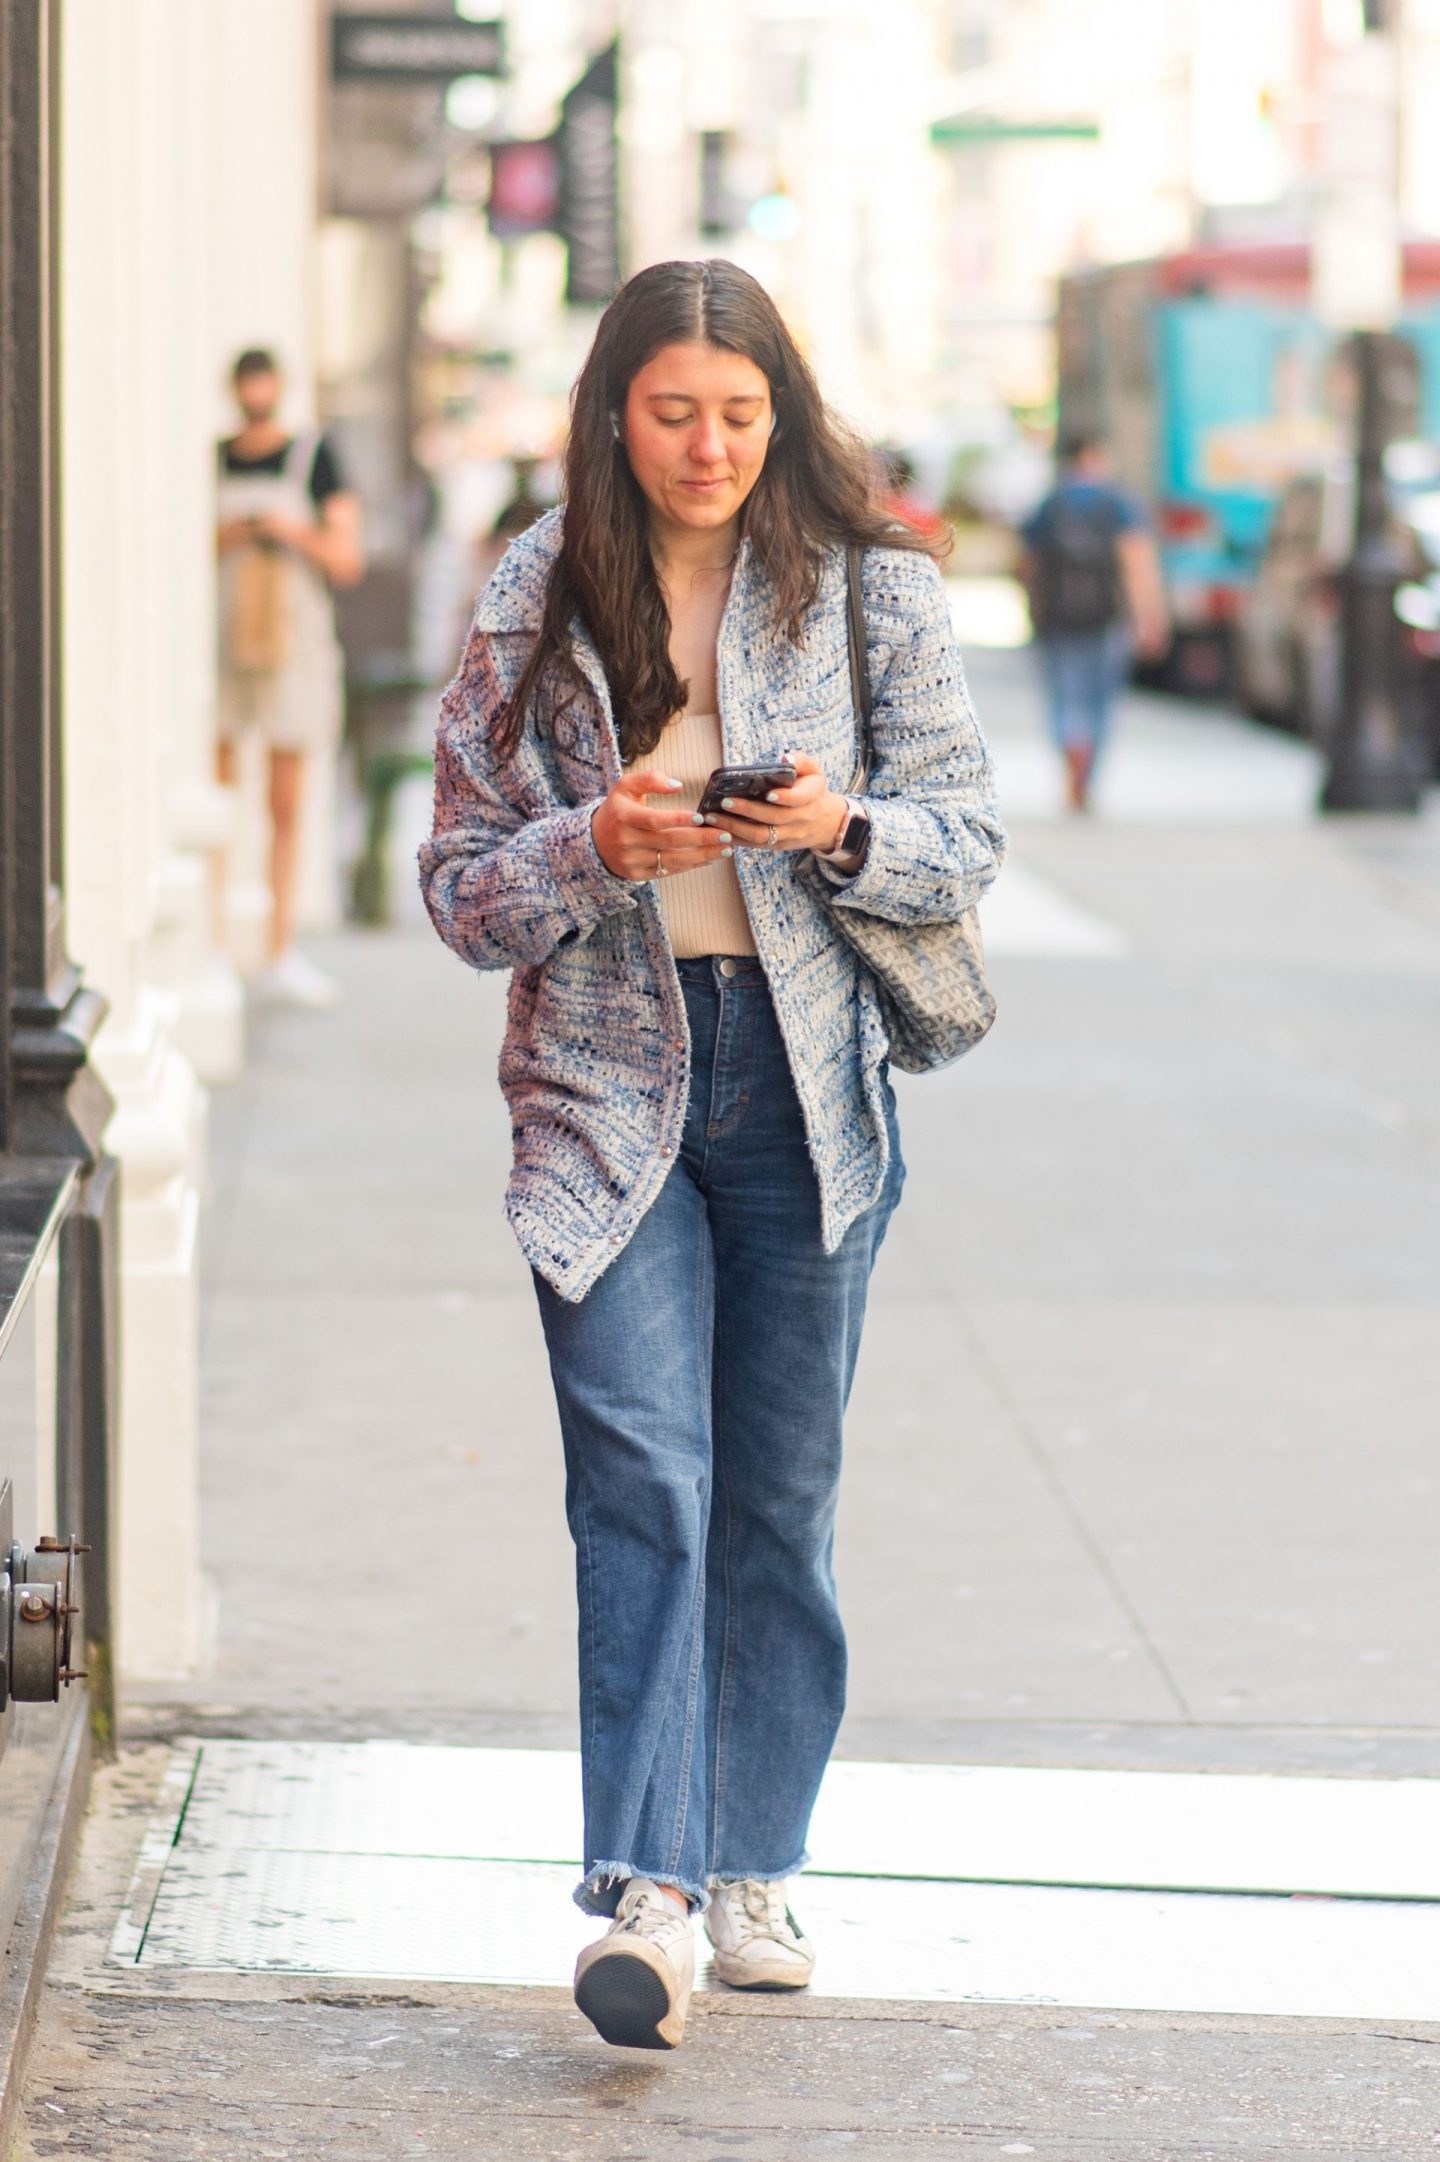 NYC street fashion fall outfit idea - woman wearing everyday casual fall outfit - Karya Schanilec NYC fashion photographer